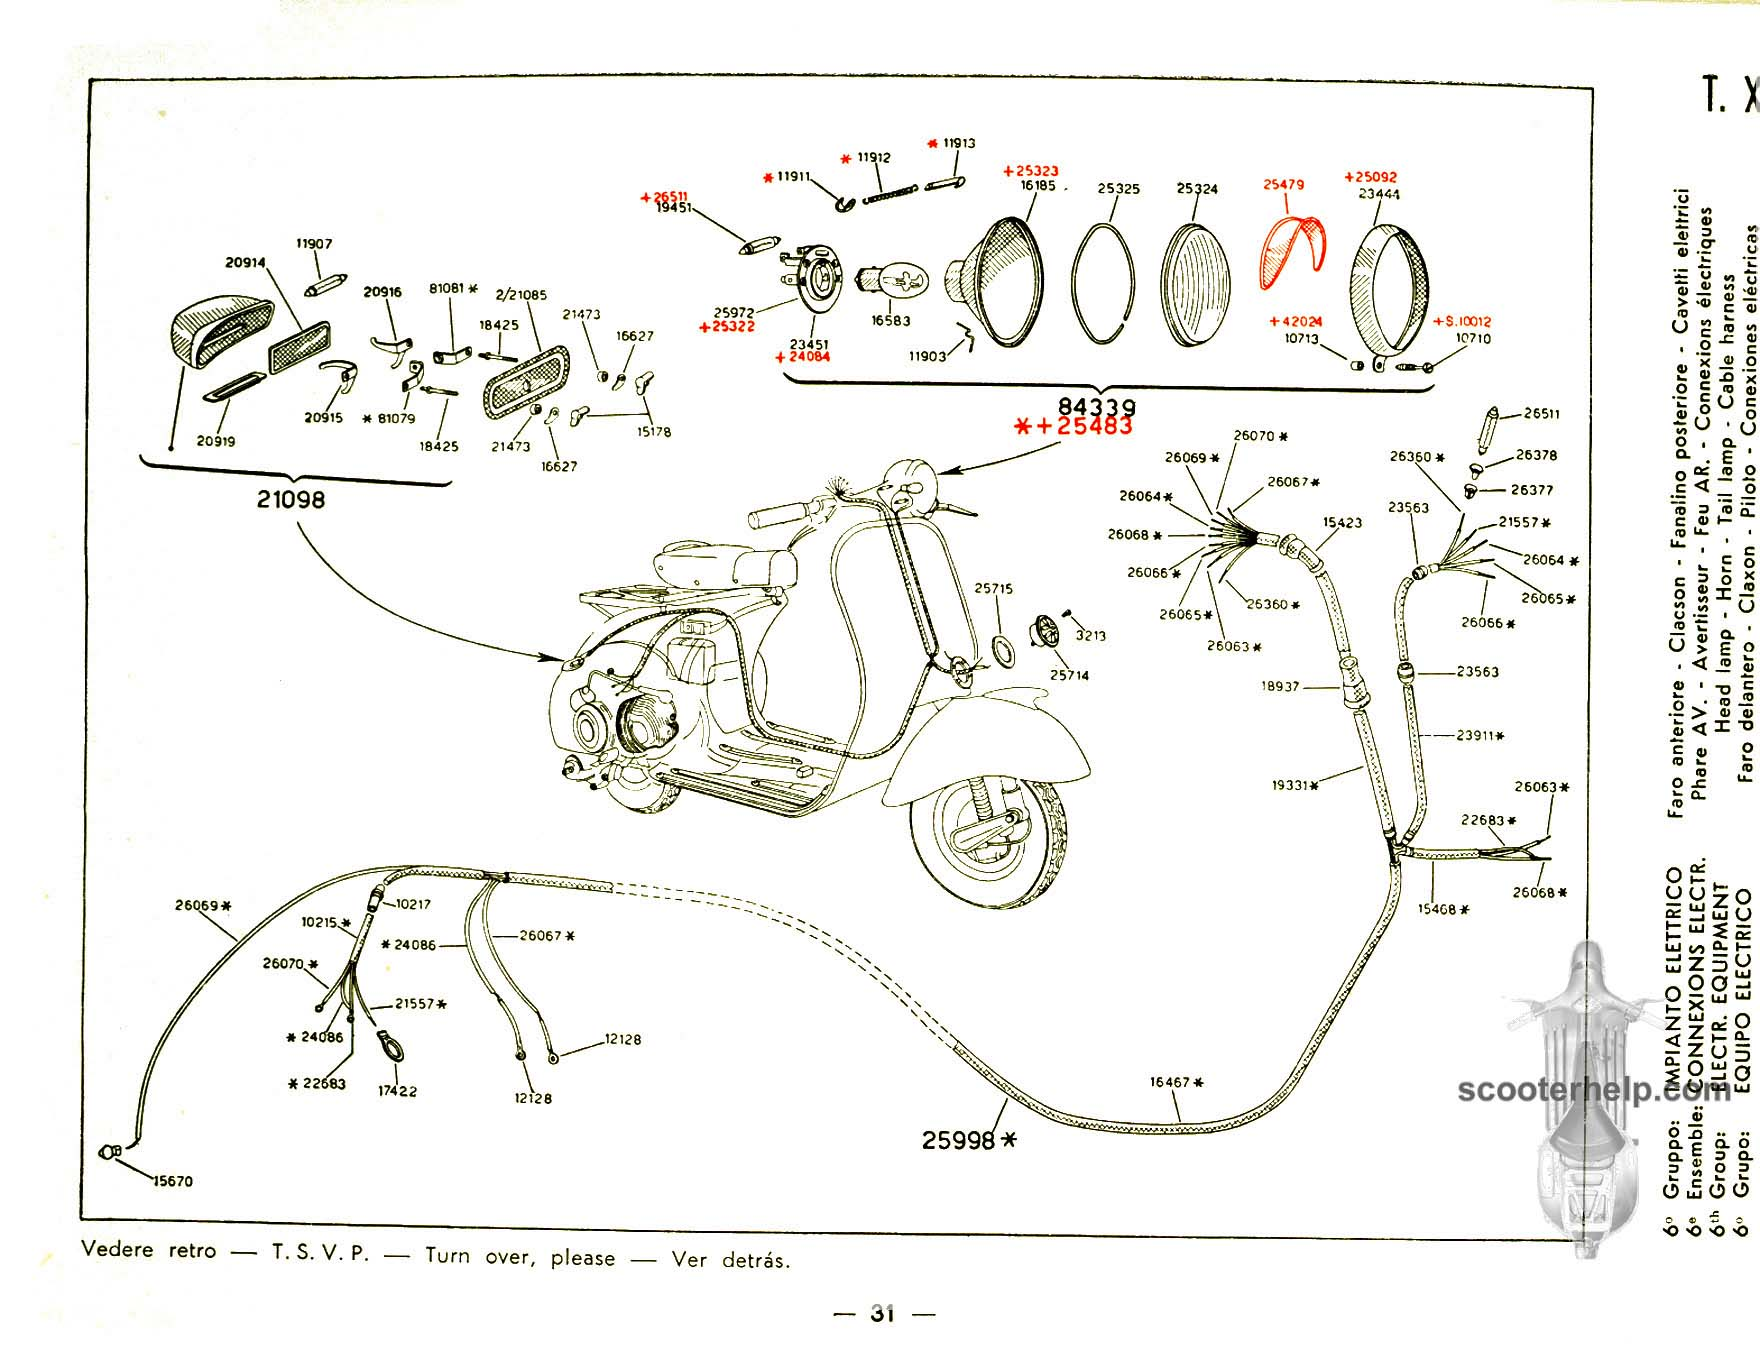 Wiring Diagram Vespa Vl1 Nice Place To Get Et3 150 Vl1t Vl3t Parts Manual Rh Scooterhelp Com Scooter Schematic Electrical